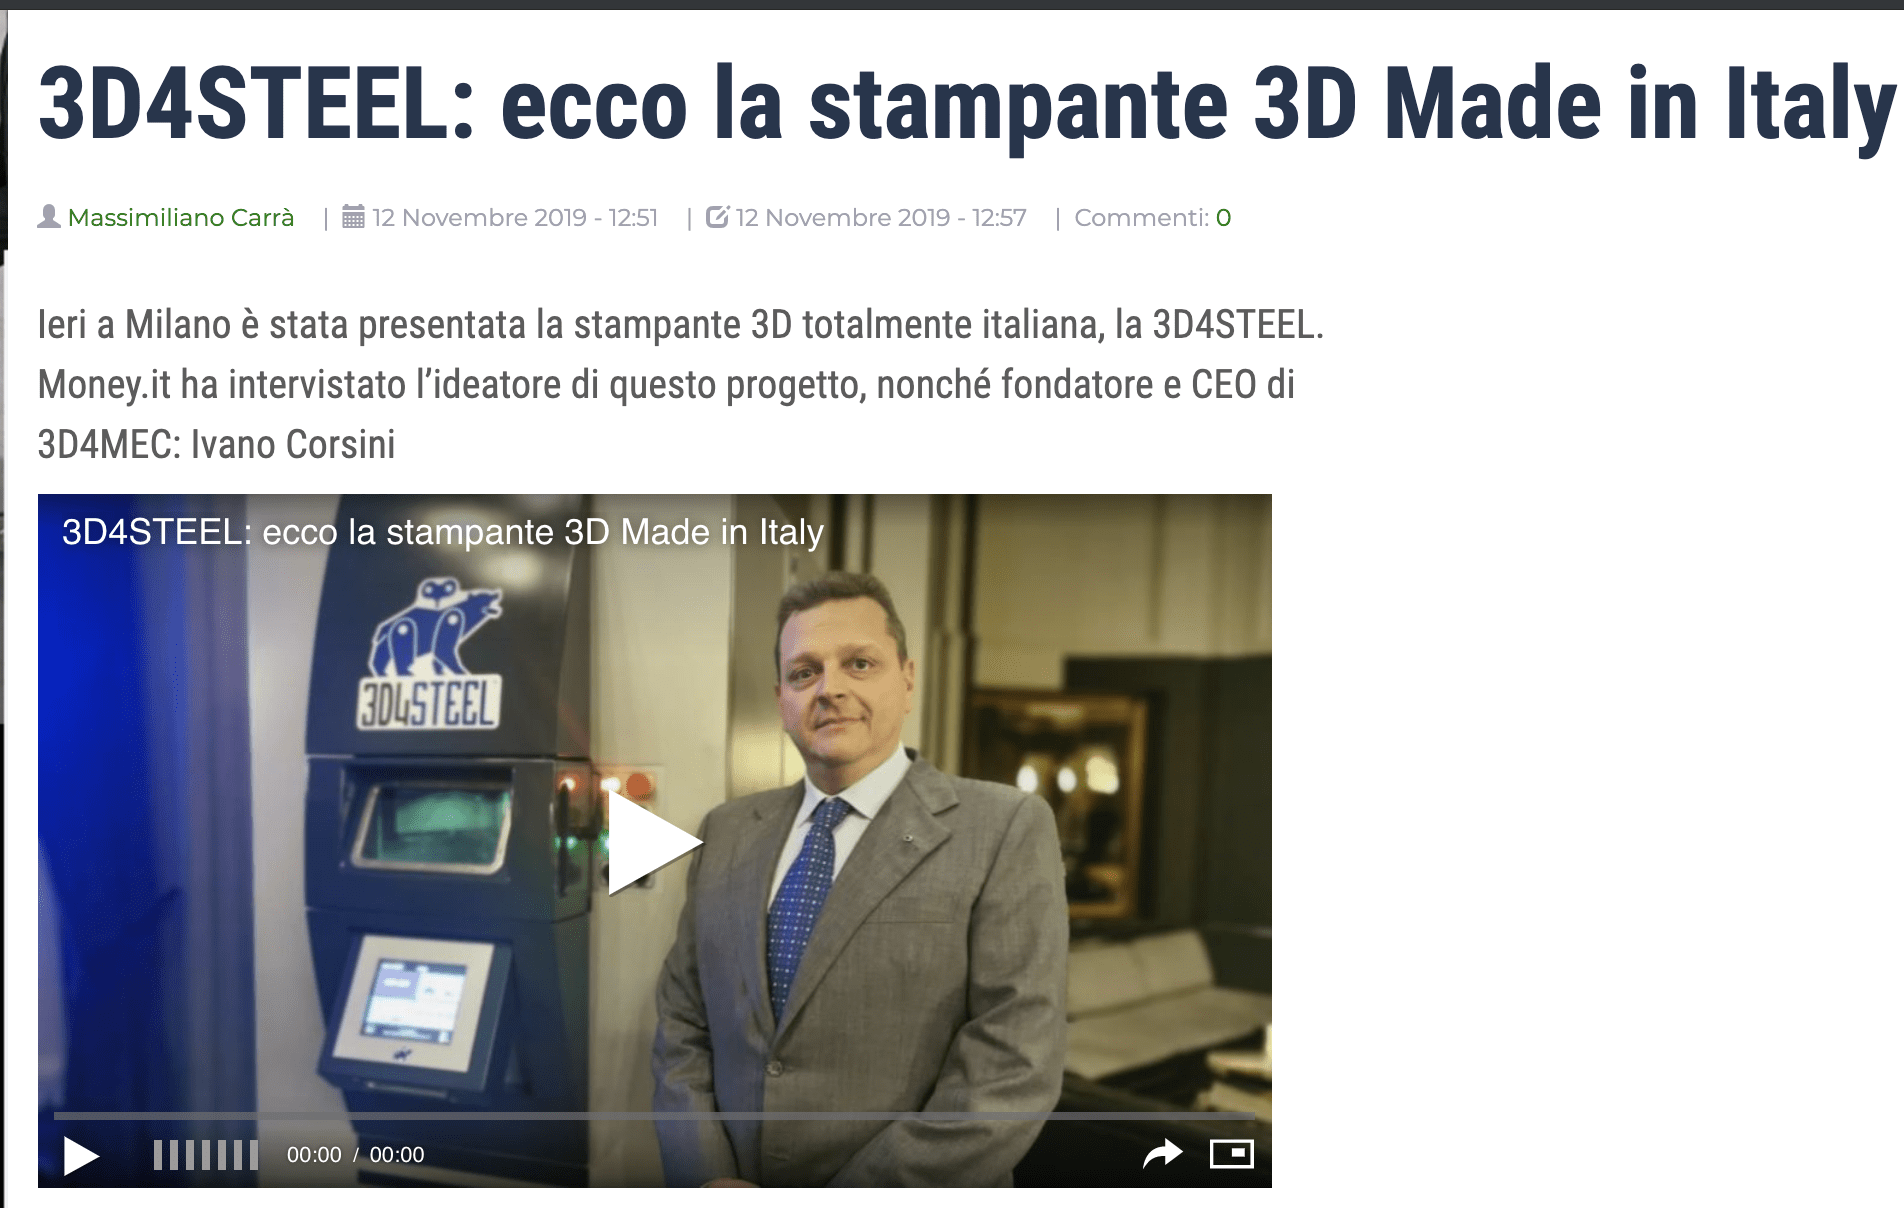 [Money.it] 3D4STEEL: ecco la stampante 3D Made in Italy